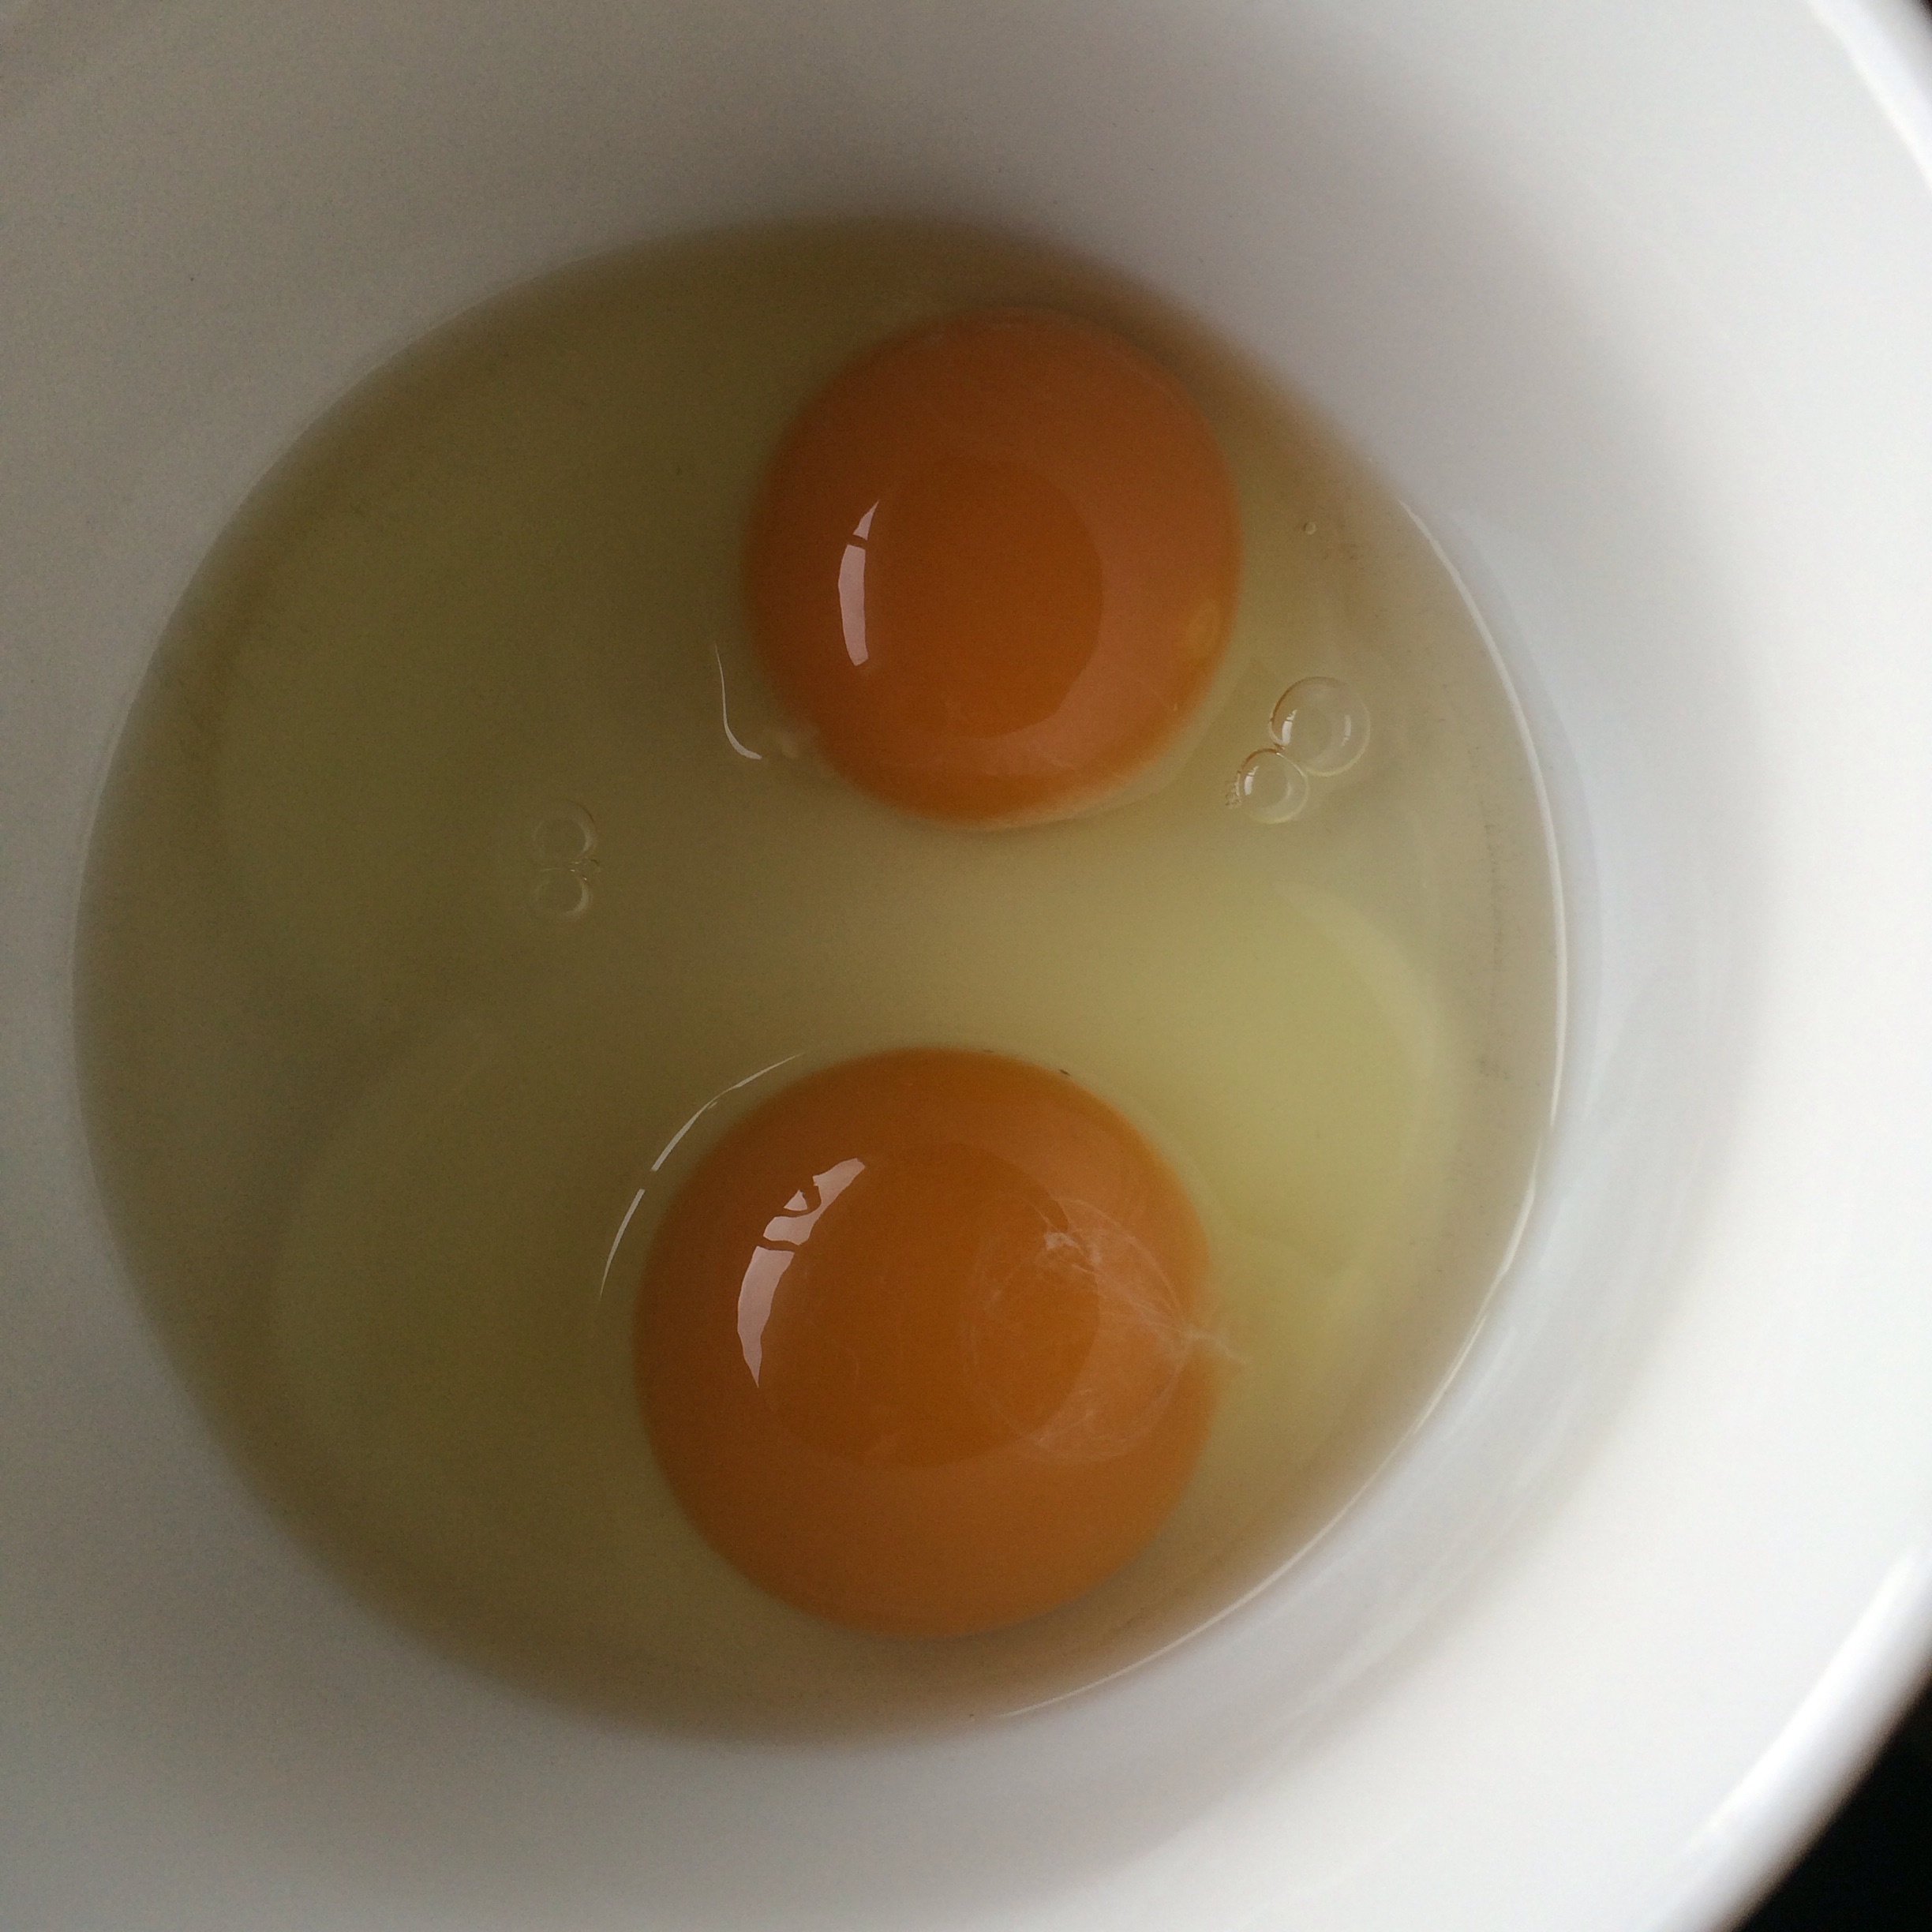 No matter what the egg shell color or size the eggs are you still get the same fantastic yolks and whites it's all and how the chickens are raised